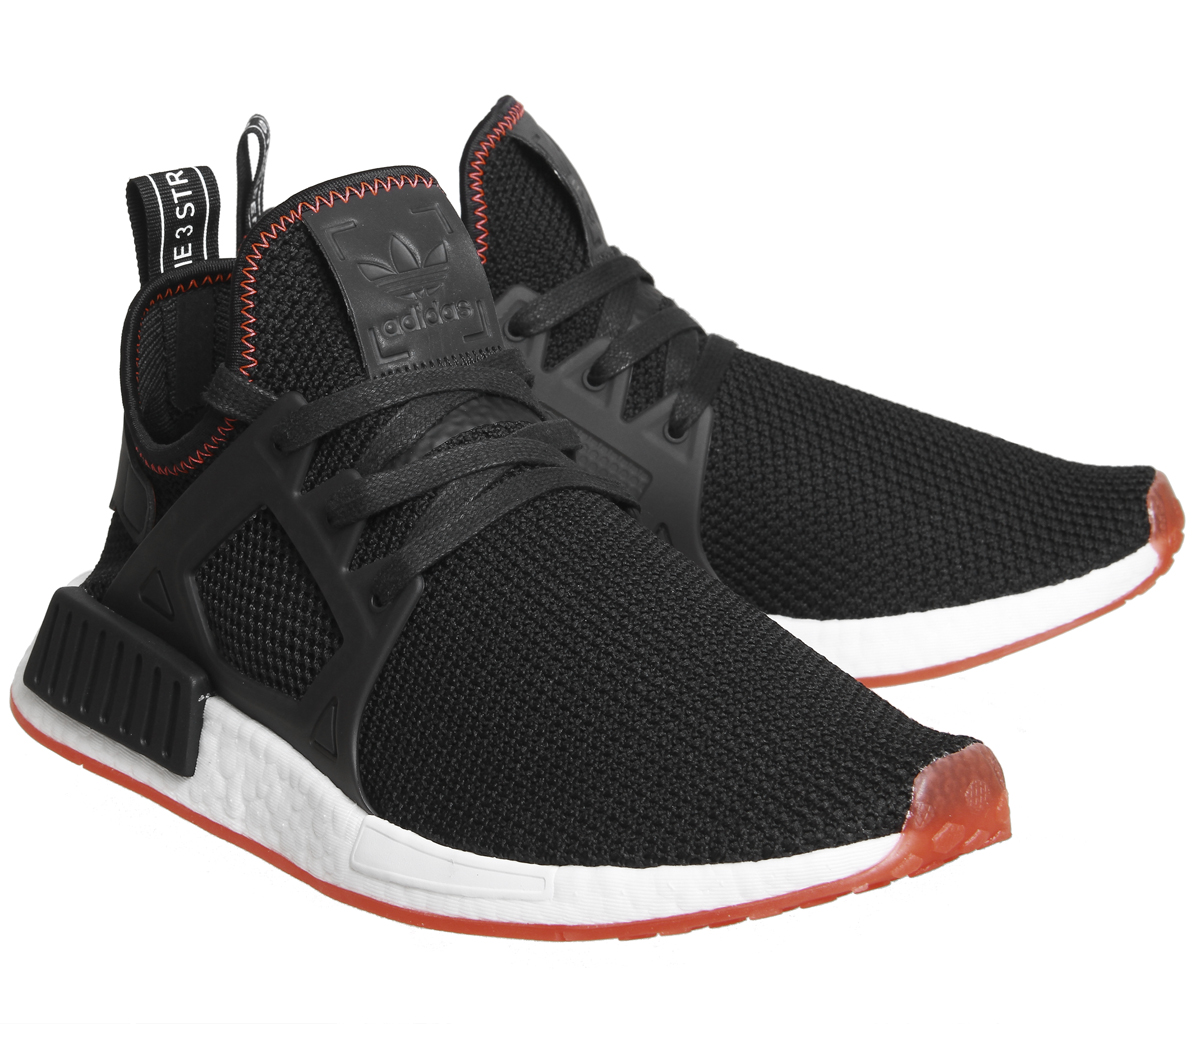 3b4c876fb7d93 Sentinel Adidas Nmd Xr1 BLACK BLACK SOLAR RED Trainers Shoes